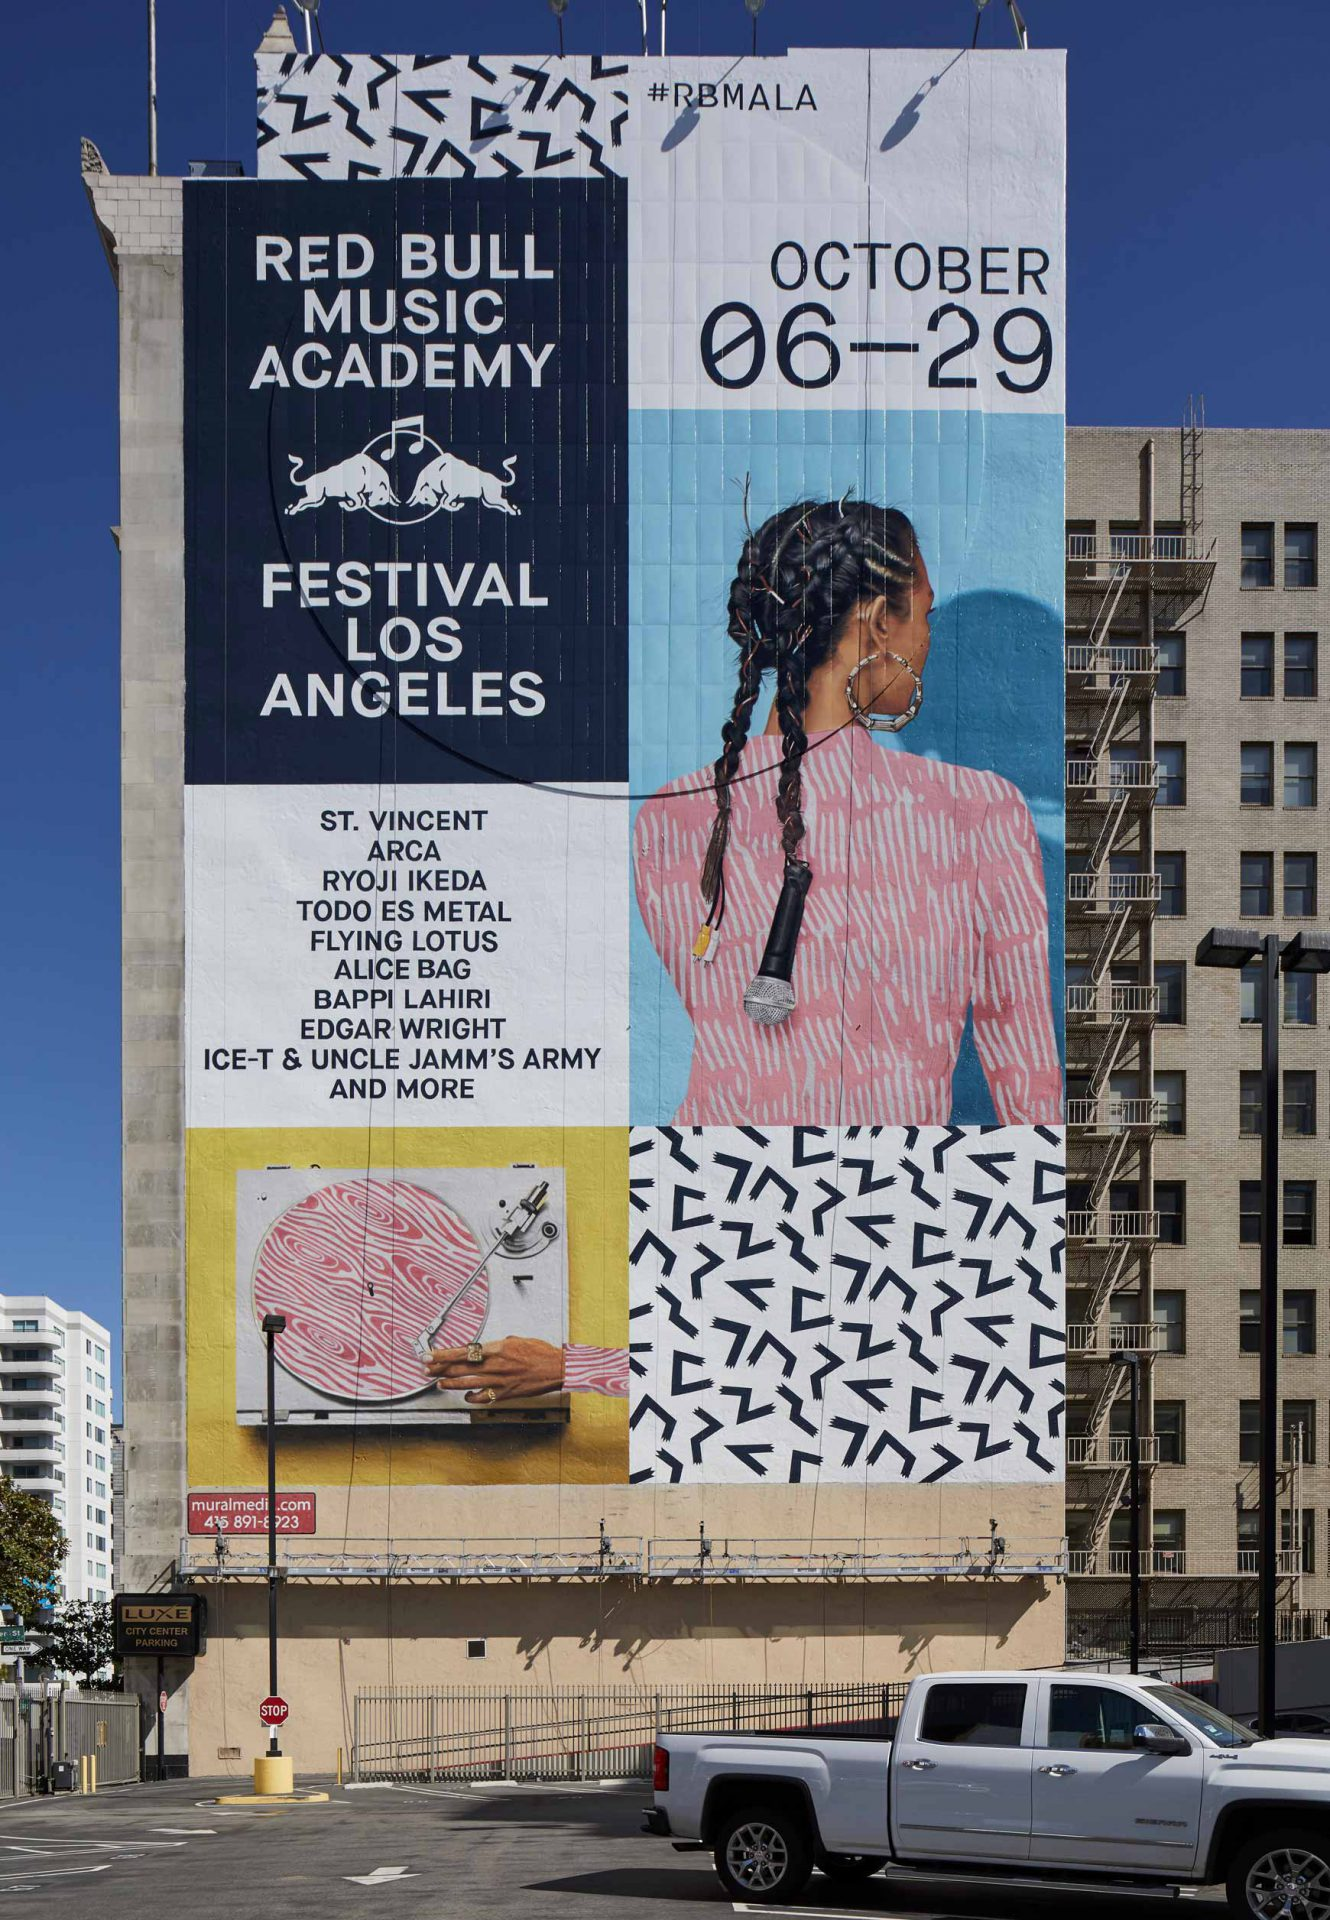 Red Bull Music Academy Festival Los Angeles